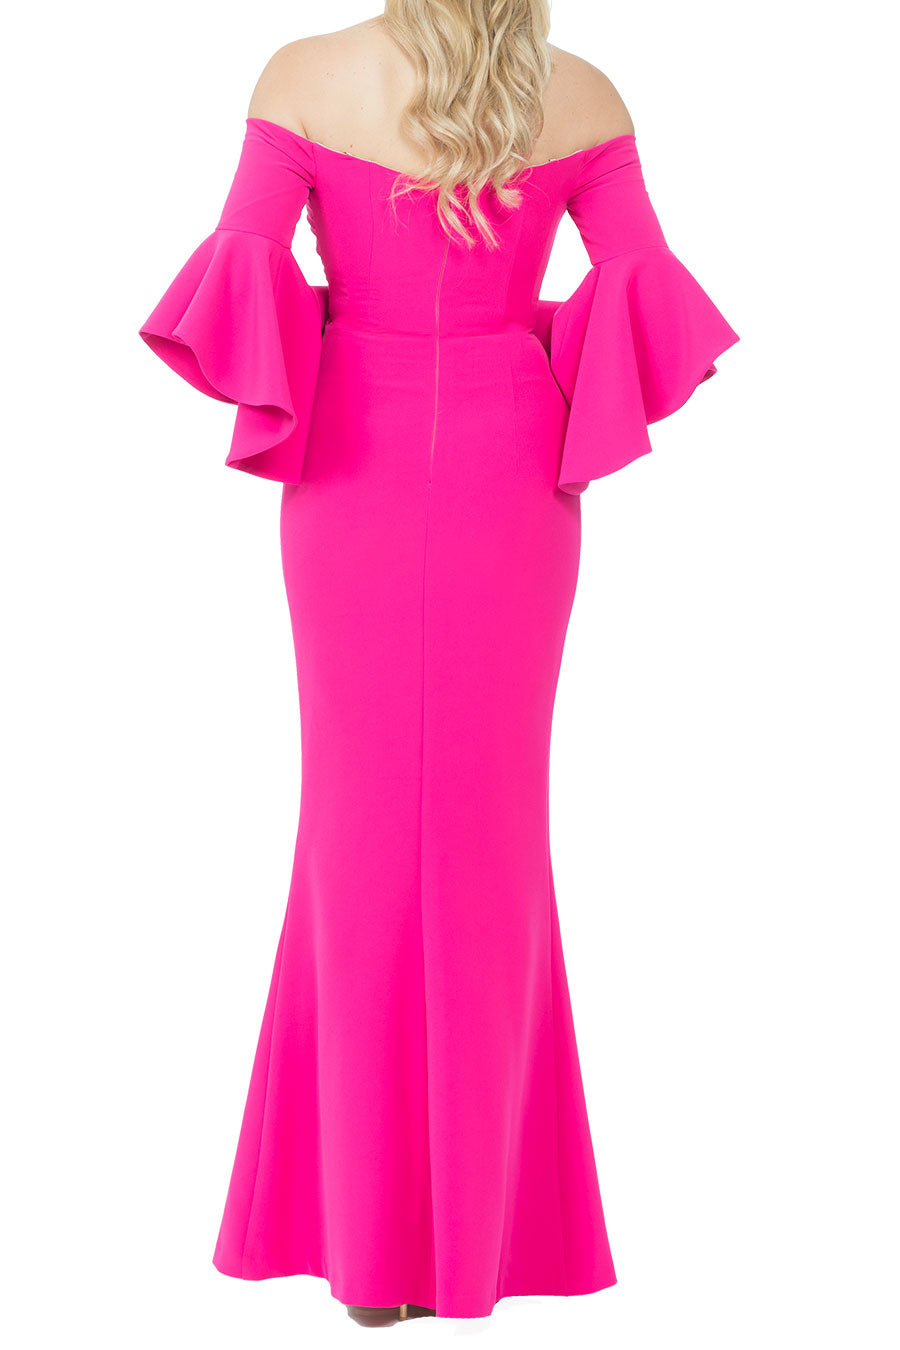 Lindsay Dress - Hot Pink – WANTMYLOOK